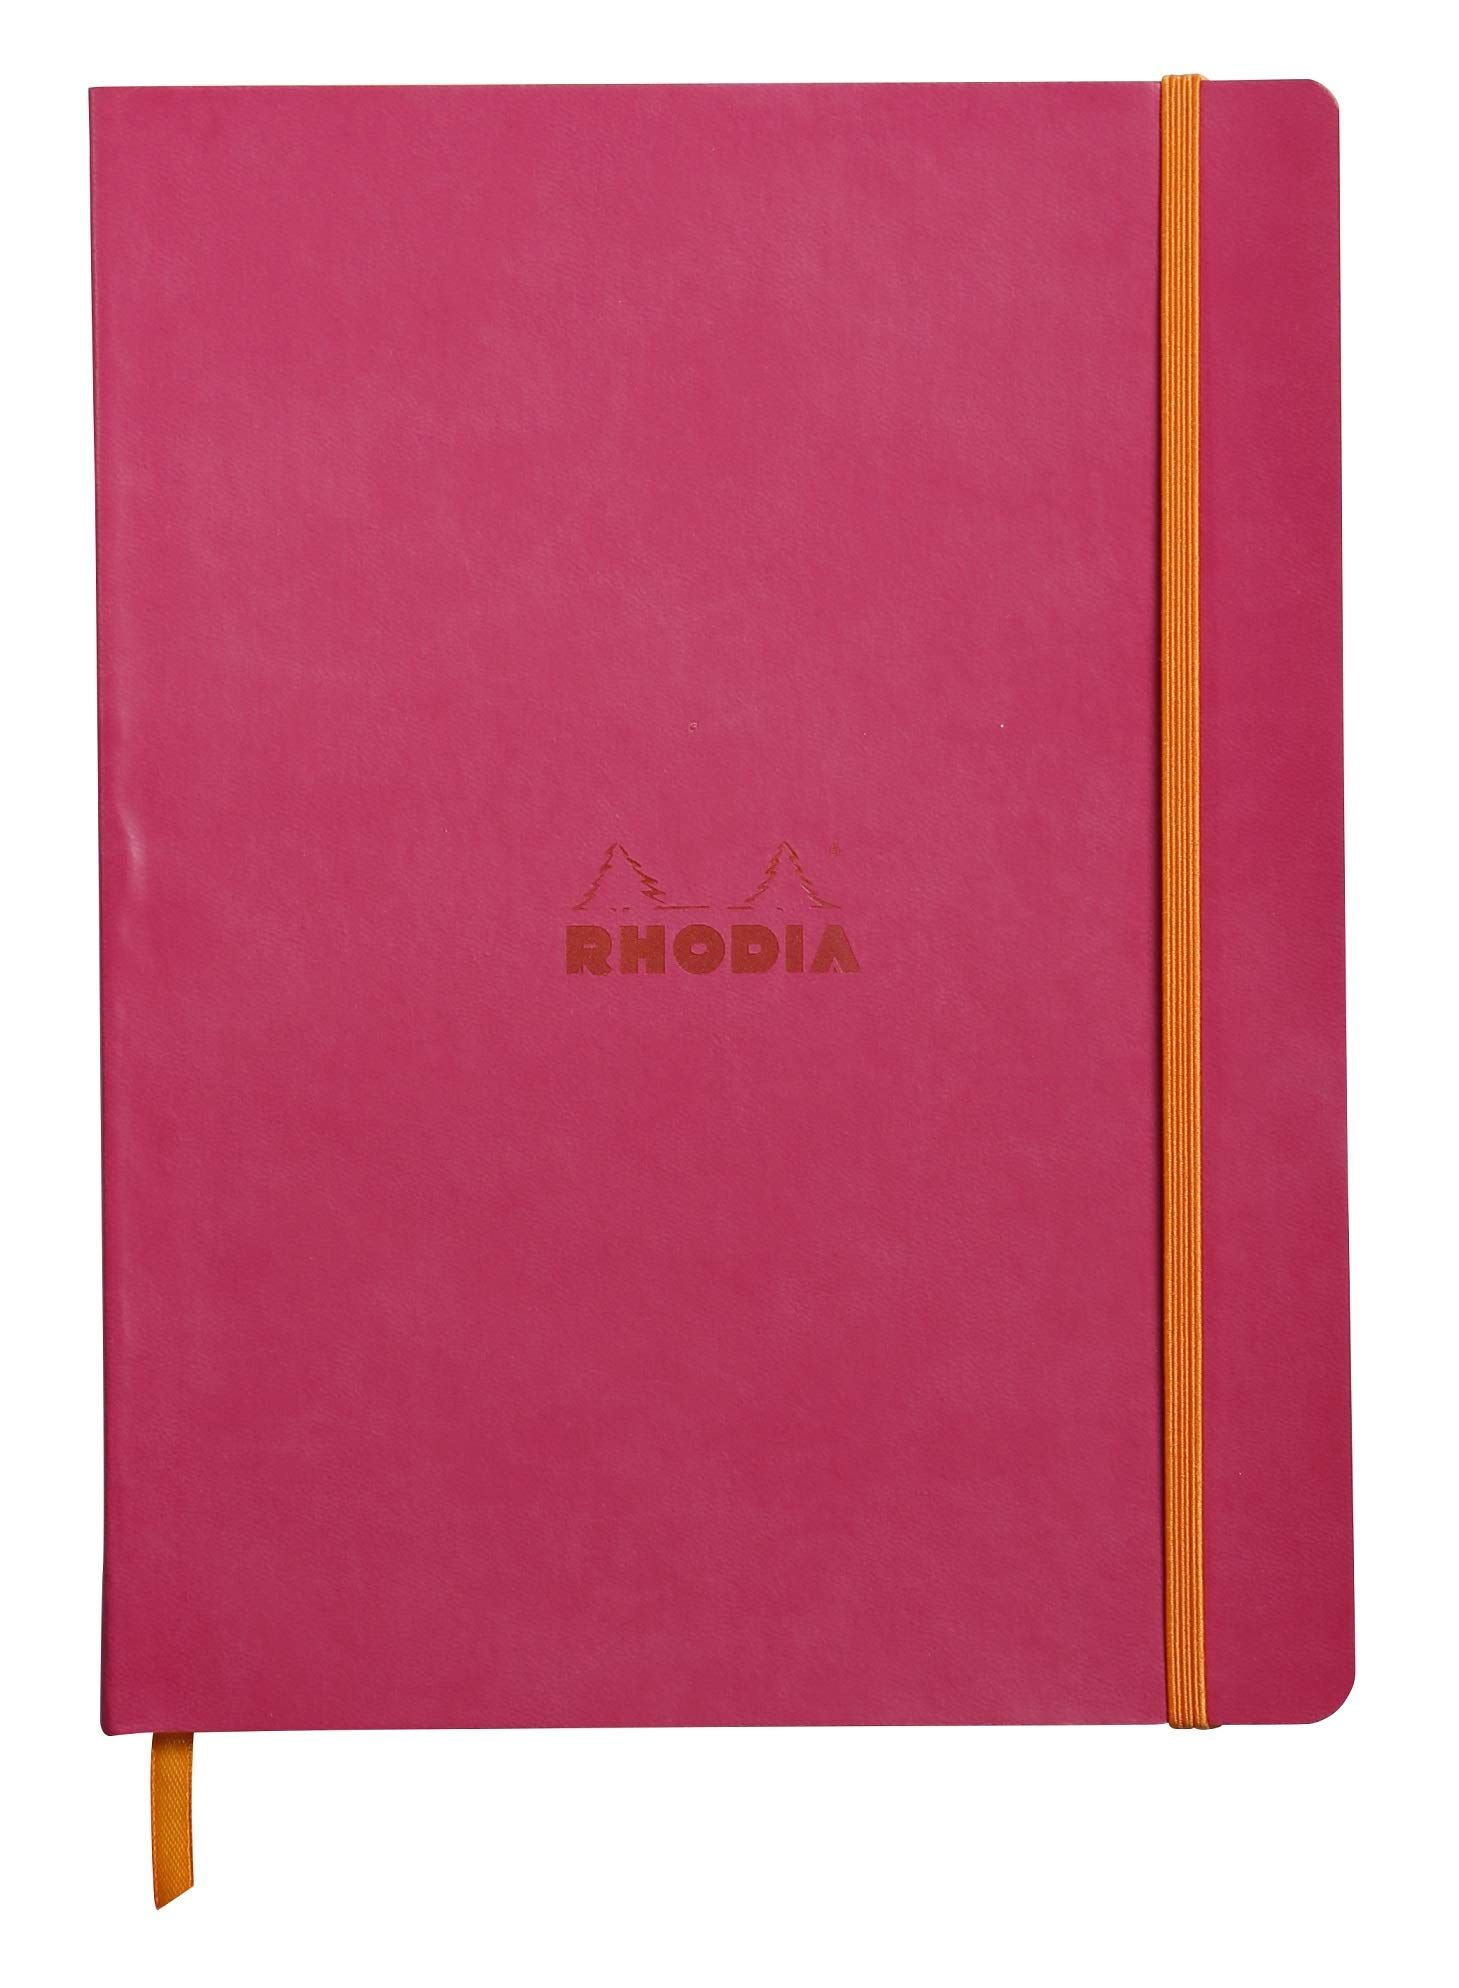 Rhodia Rhodiarama SoftCover Notebook - 80 Lined Sheets - 9 3/4 x 7 1/2 - Raspberry Cover